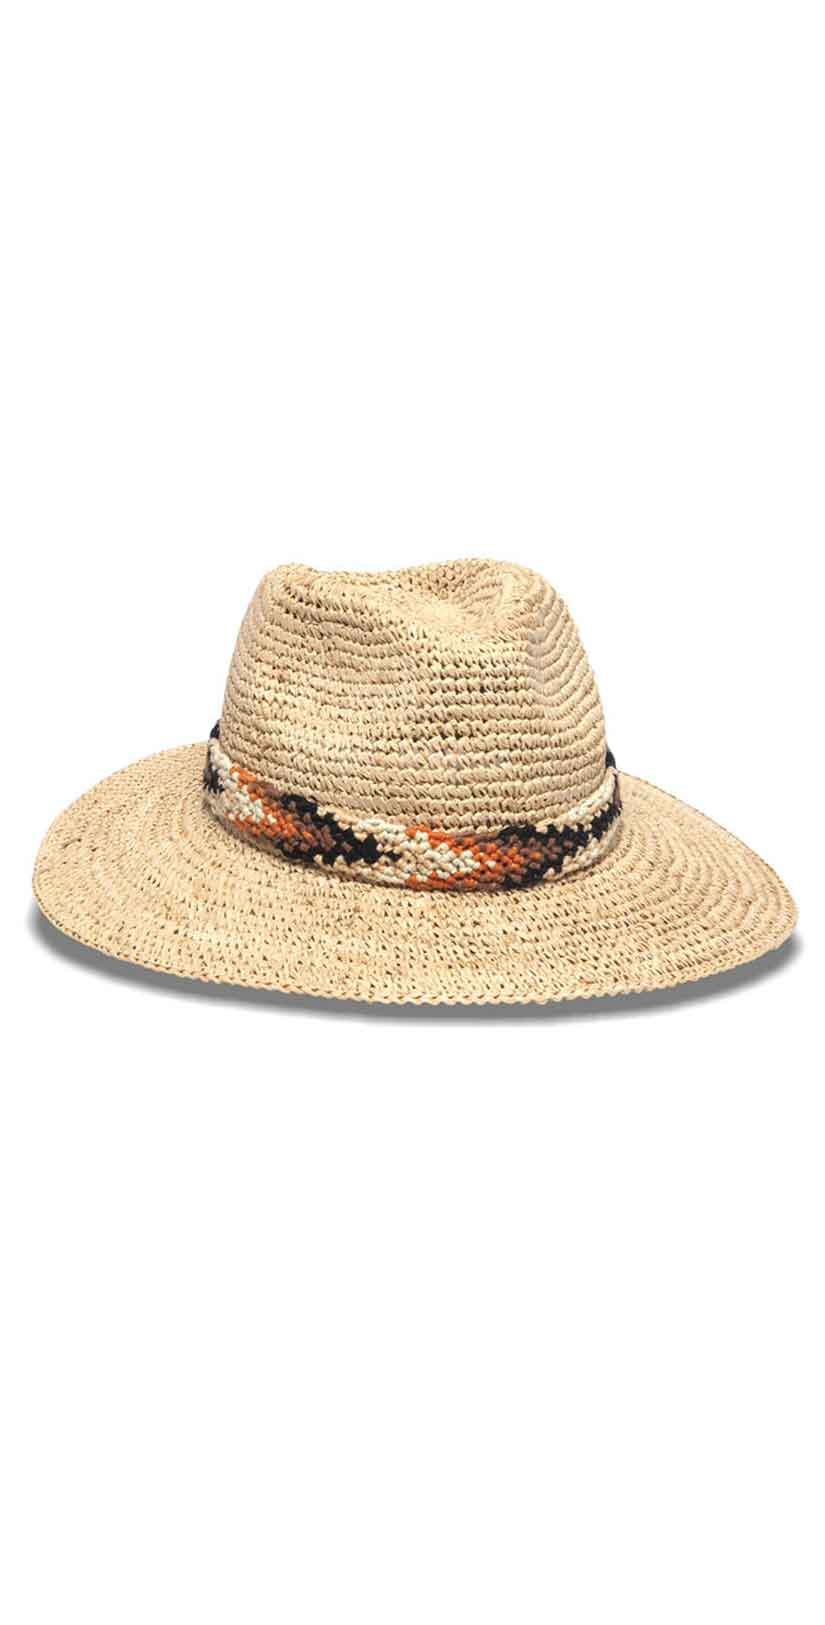 Nikki Beach Bodrum Hat in Natural: